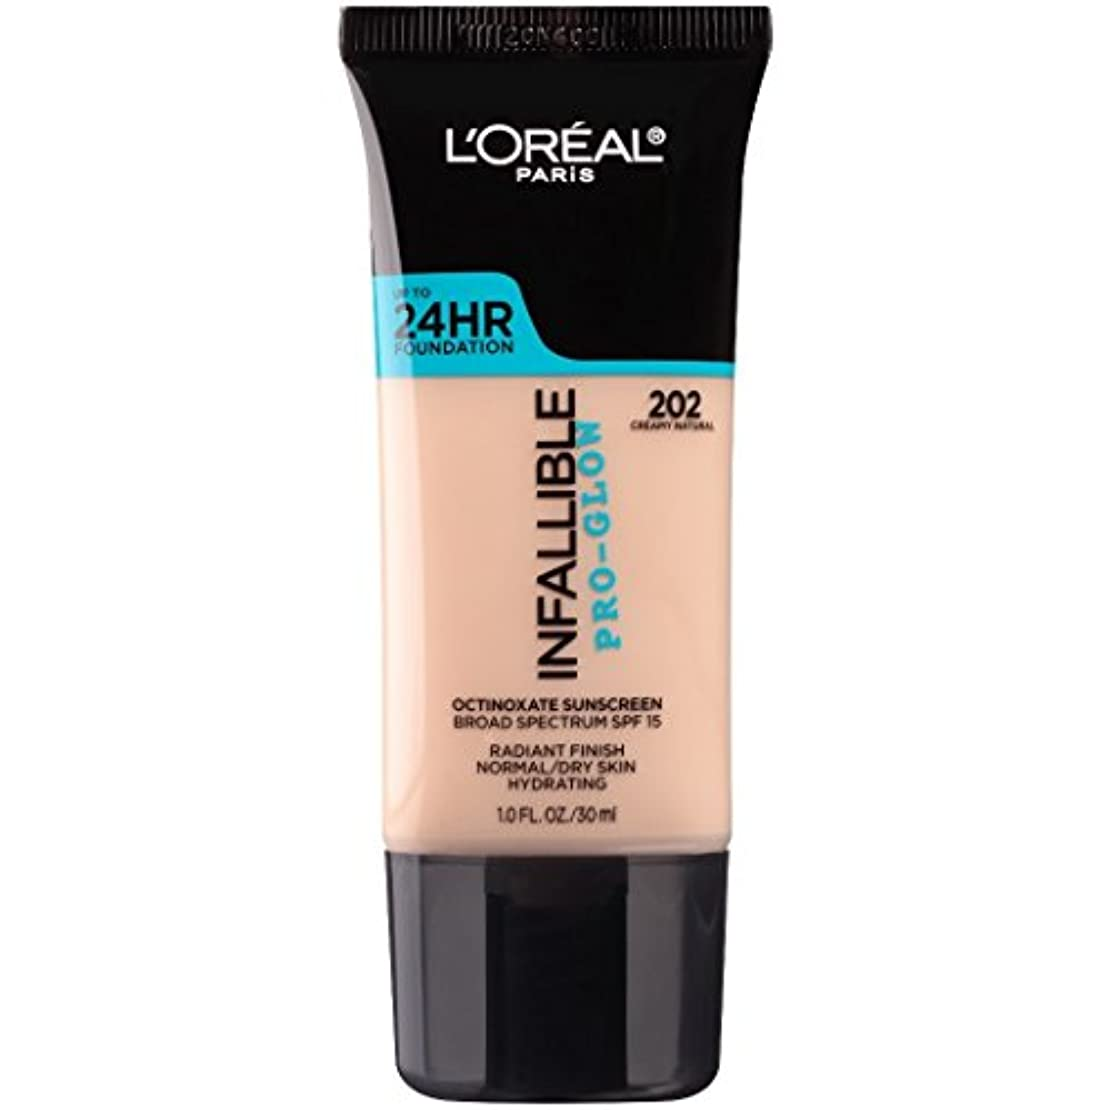 L'OREAL Infallible Pro-Glow Foundation - Creamy Natural (並行輸入品)